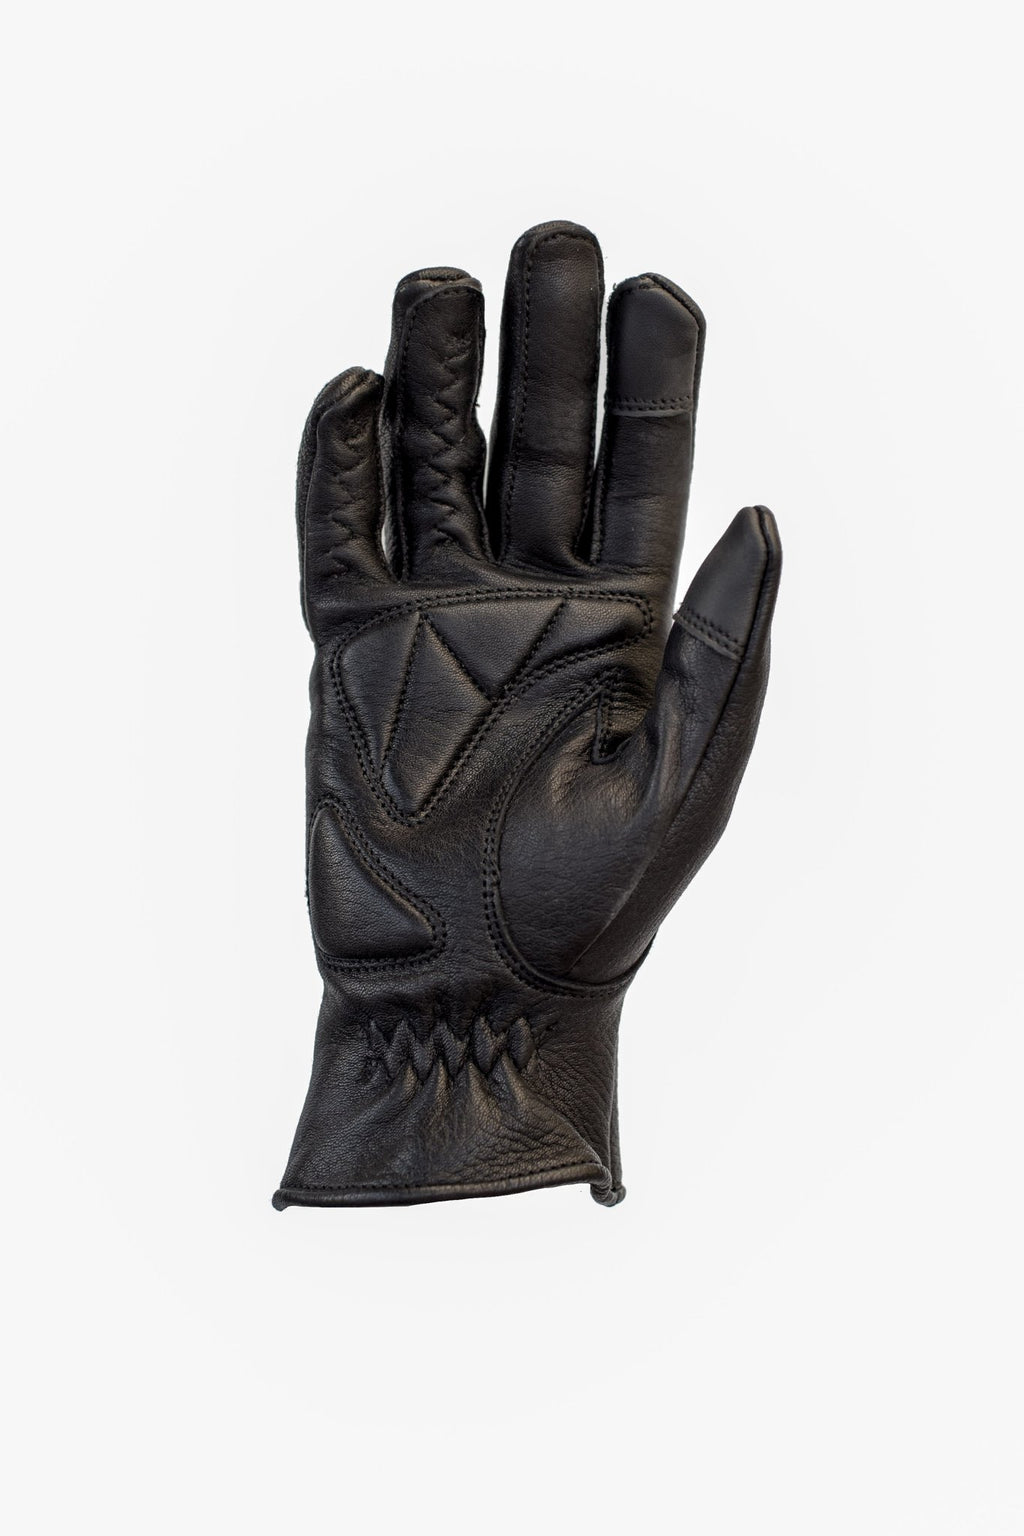 Rebel Soul Motorcycle Gloves